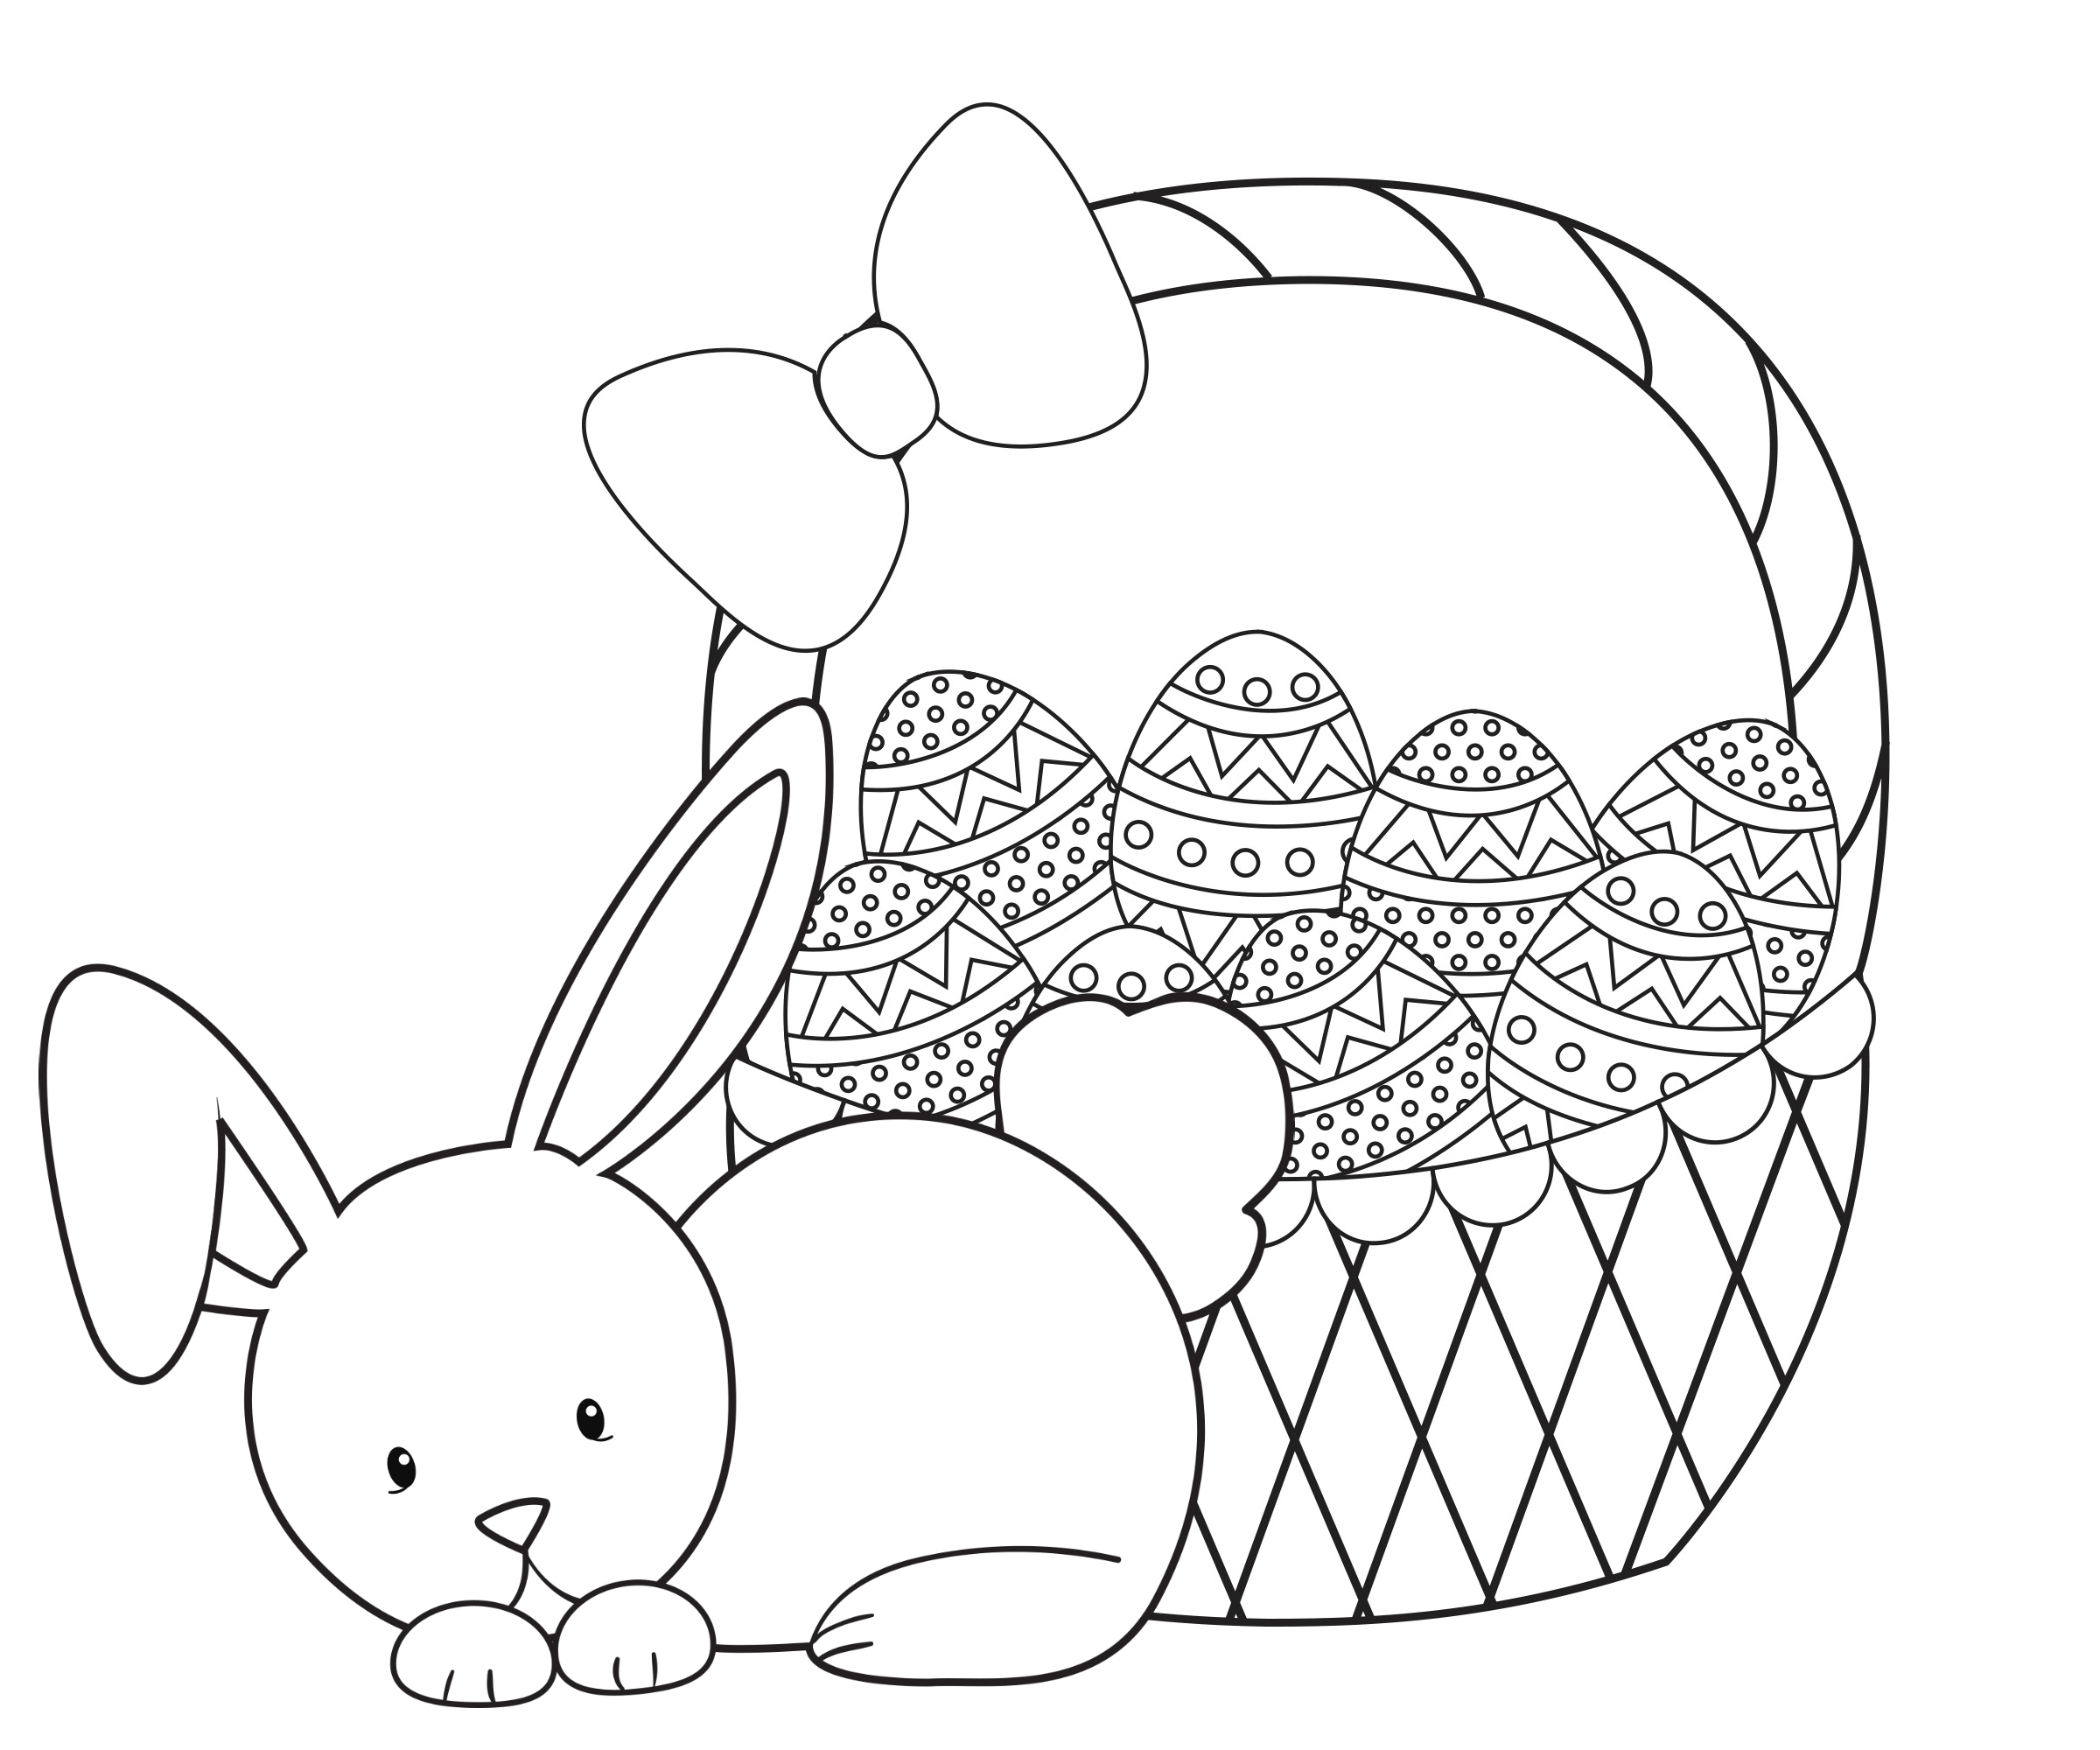 Easter Coloring Pages for Kids Crazy Little Projects Collection Of Easter Egg Designs Coloring Pages to Print